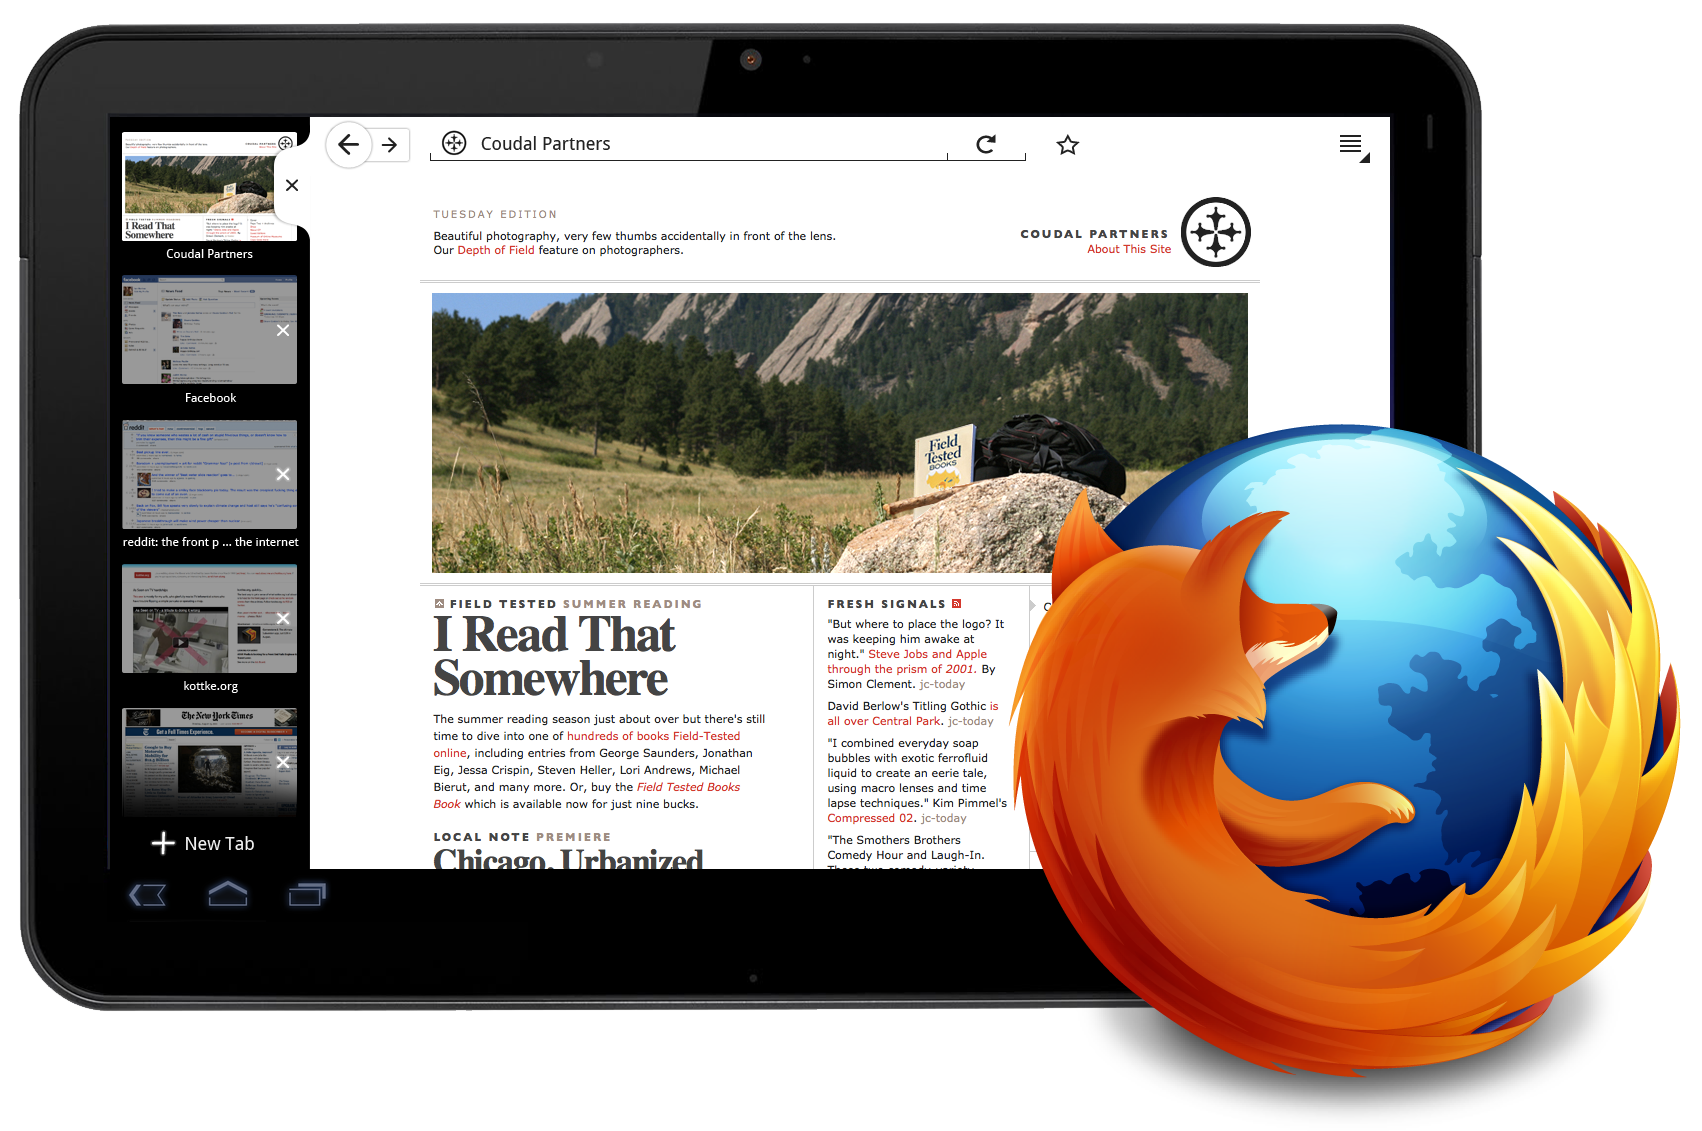 Mozilla Previews Firefox for Tablets